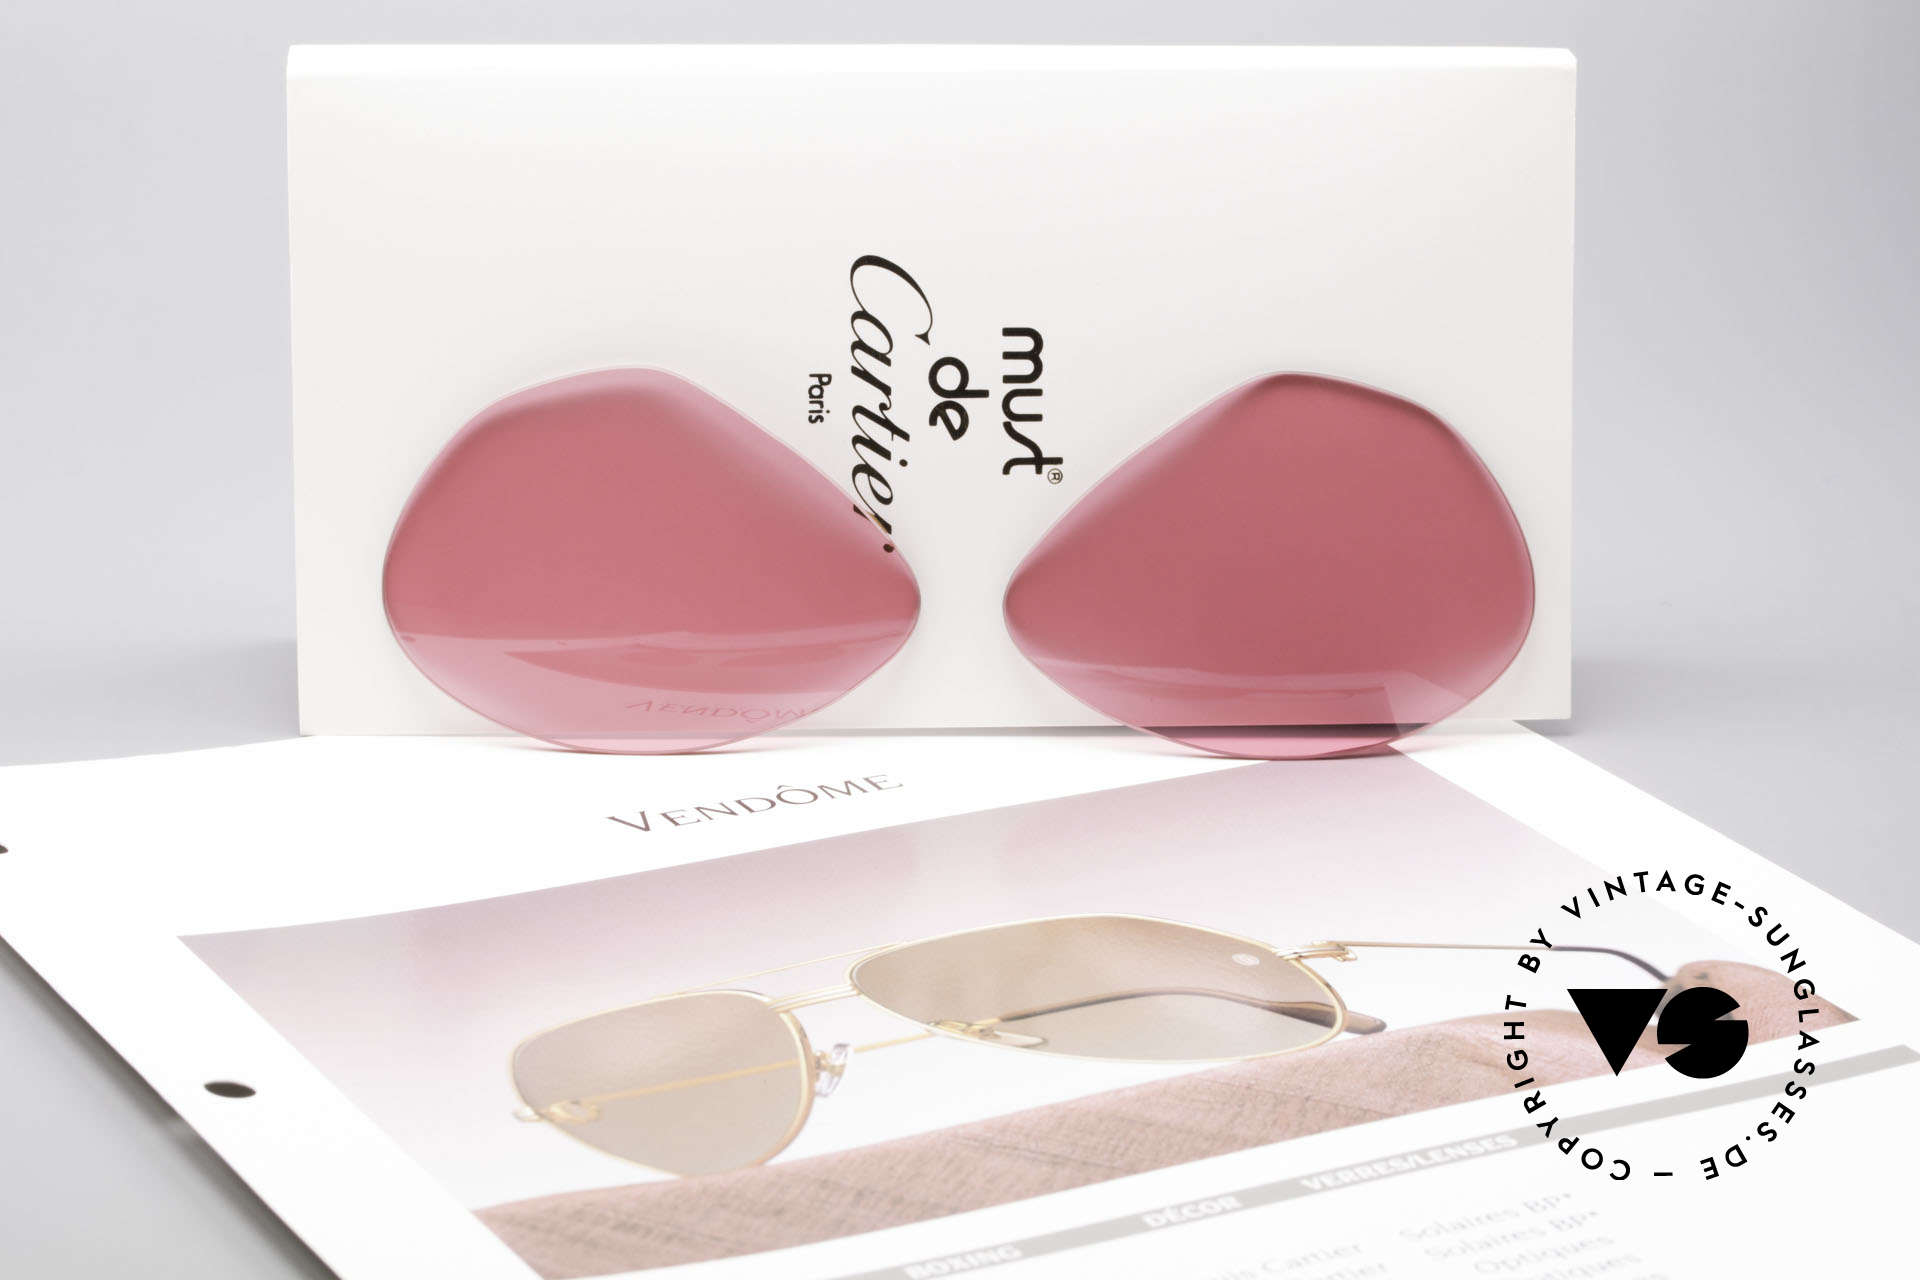 Cartier Vendome Lenses - L Pink Sun Lenses, pink tinted (so, you can see the world thru pink glasses), Made for Men